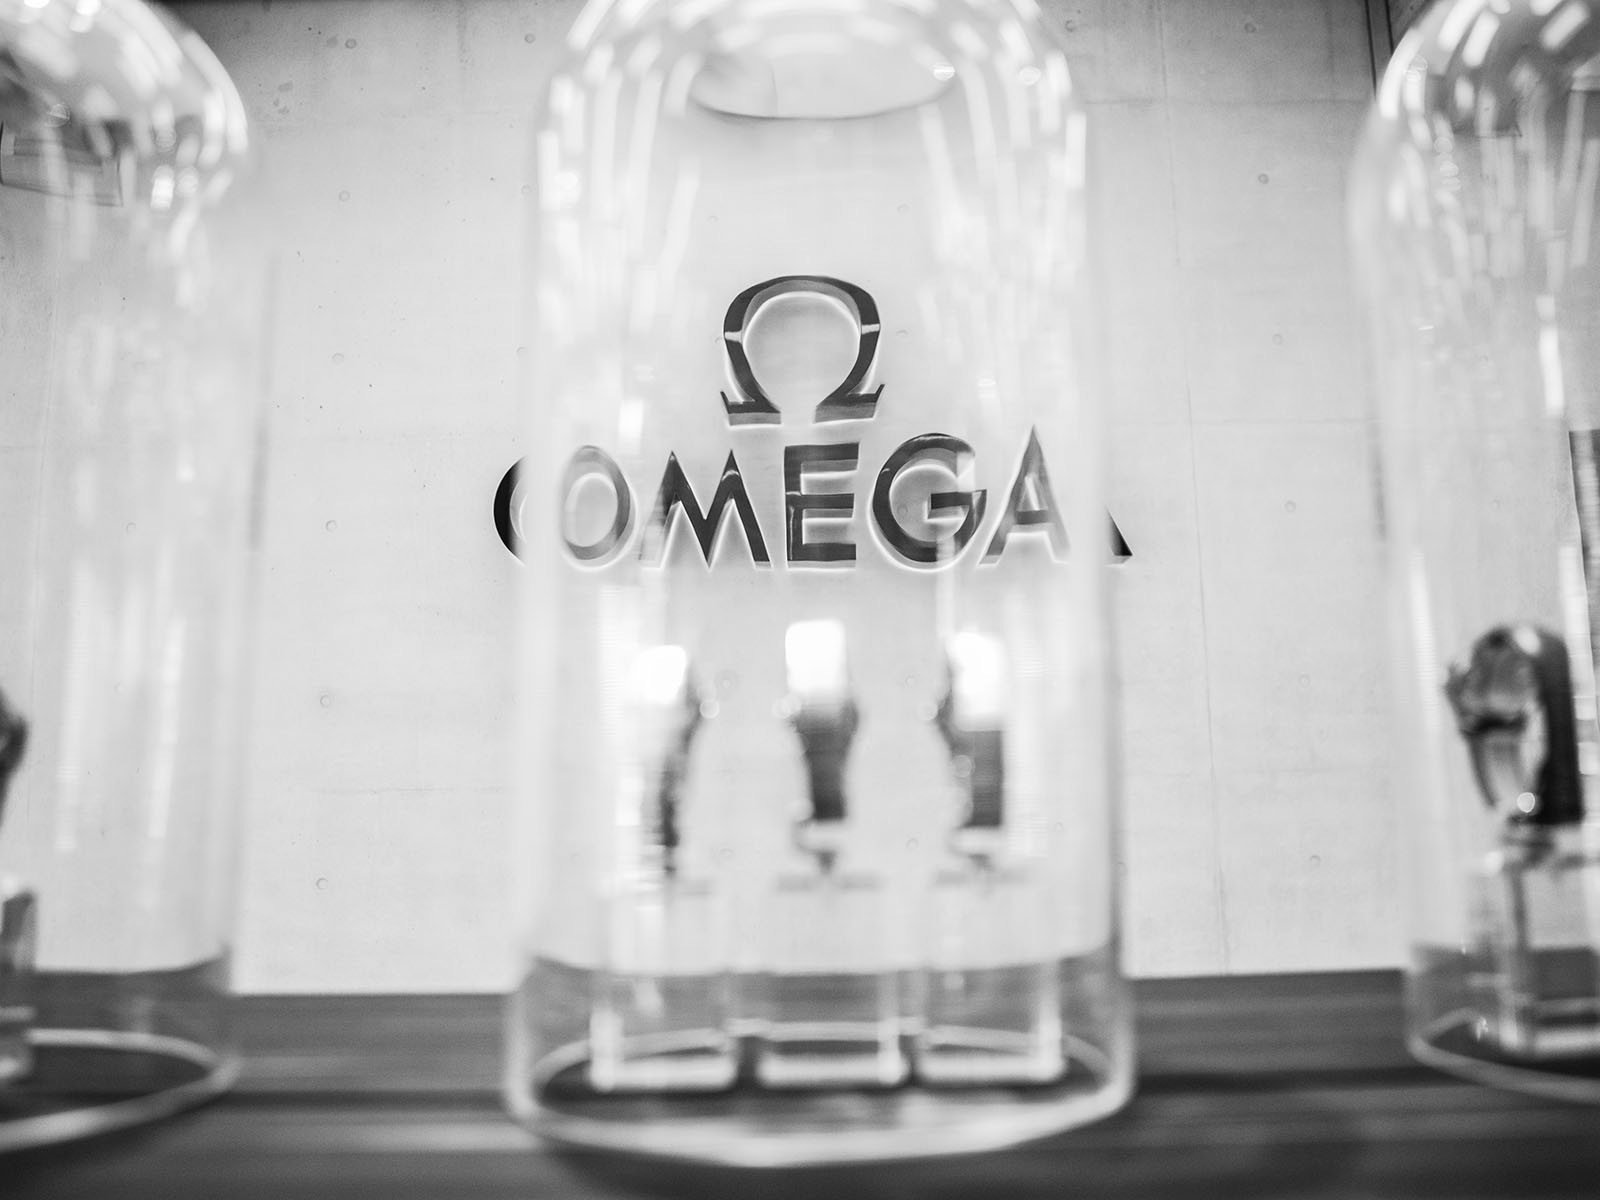 omega logo seen through a bell jar